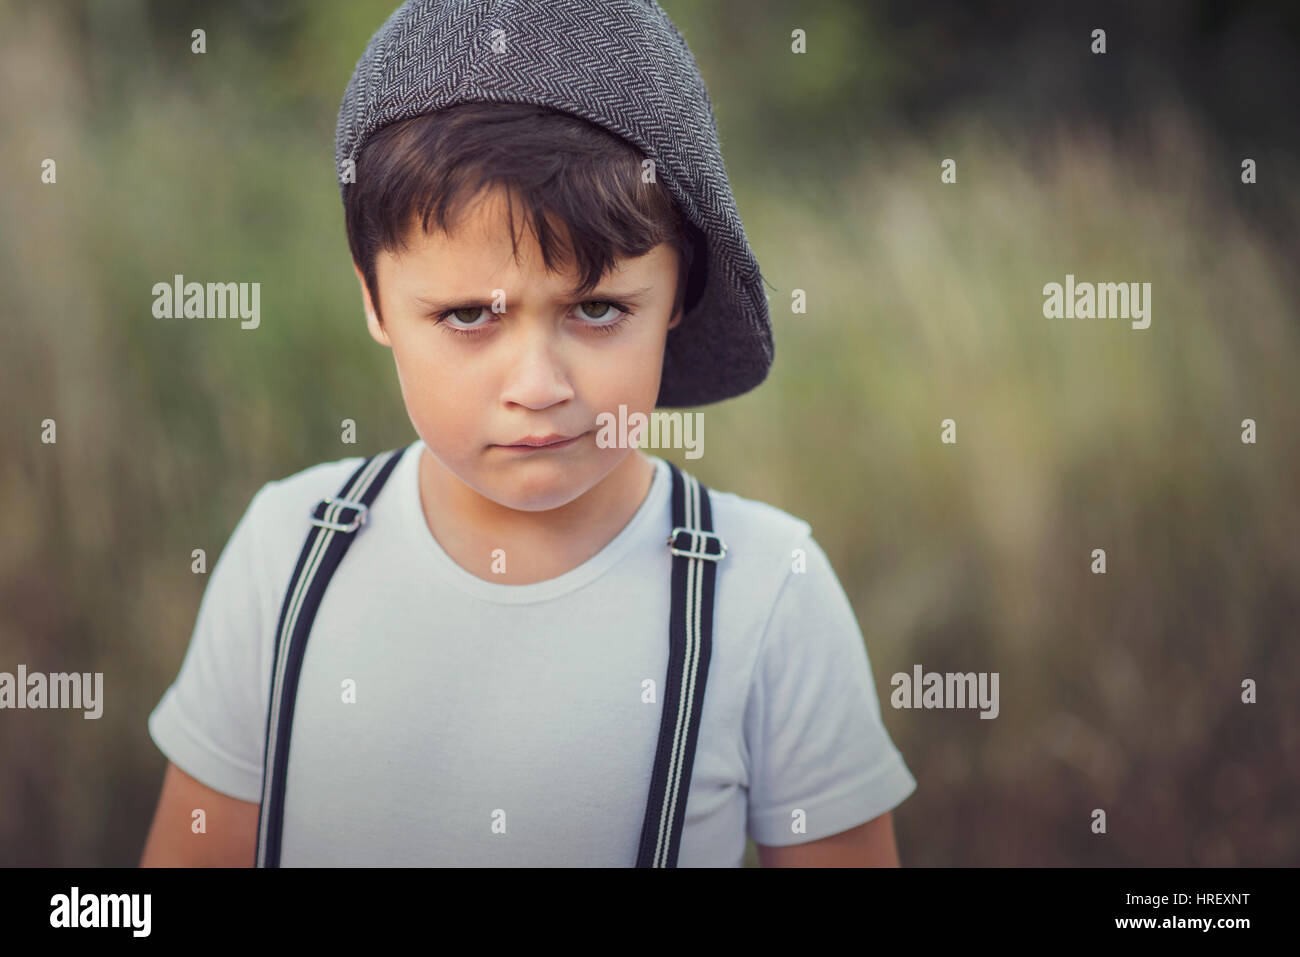 closeup of angry little boy with hat - Stock Image